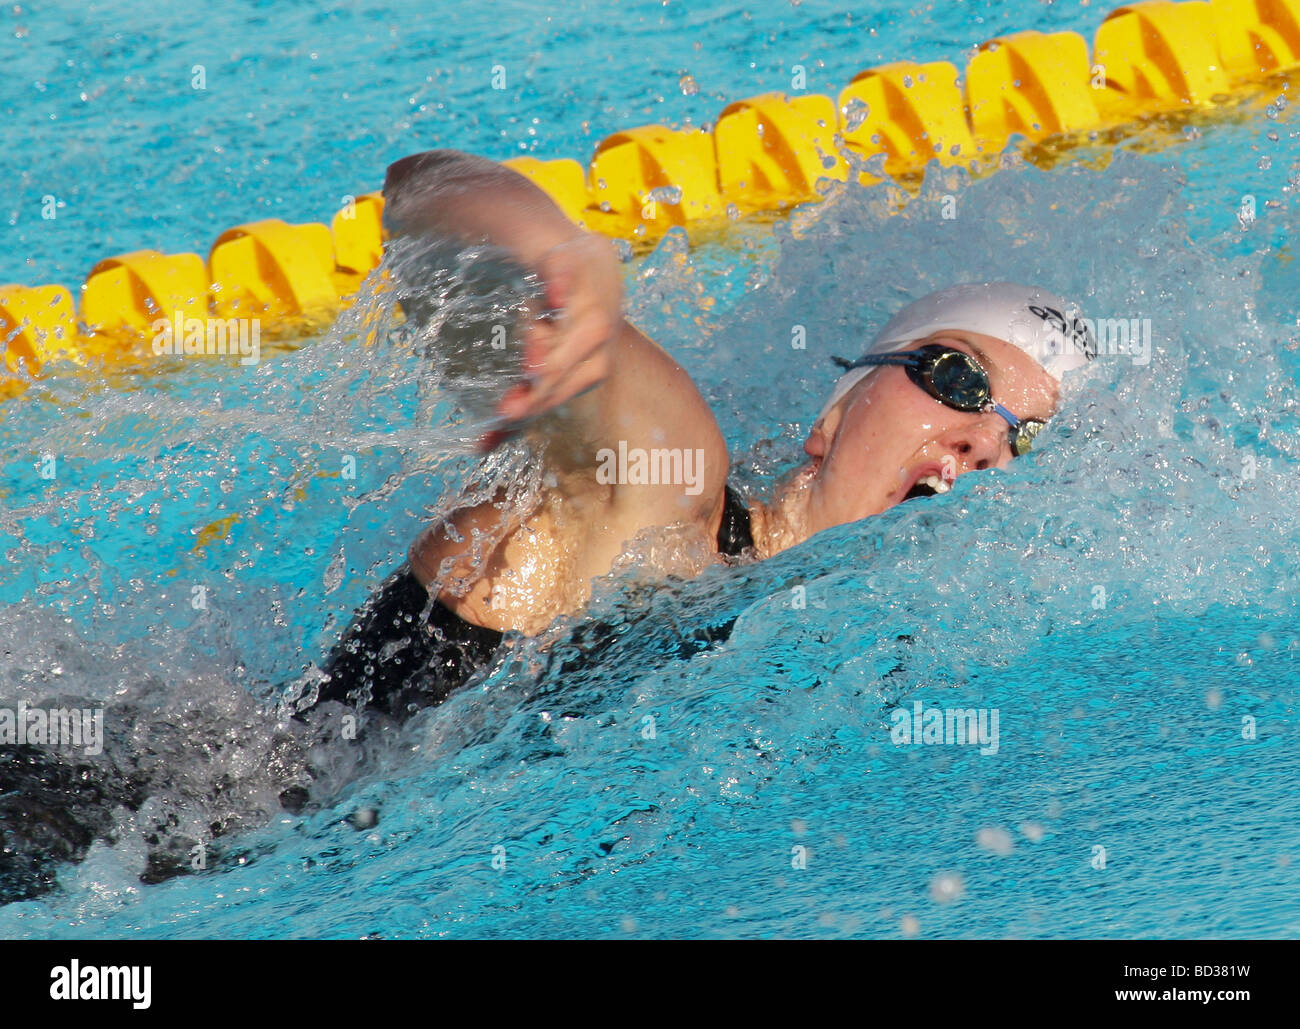 Britta Steffen GER competing in the 100m freestyle at the FINA World Swimming Championships Rome Italy - Stock Image